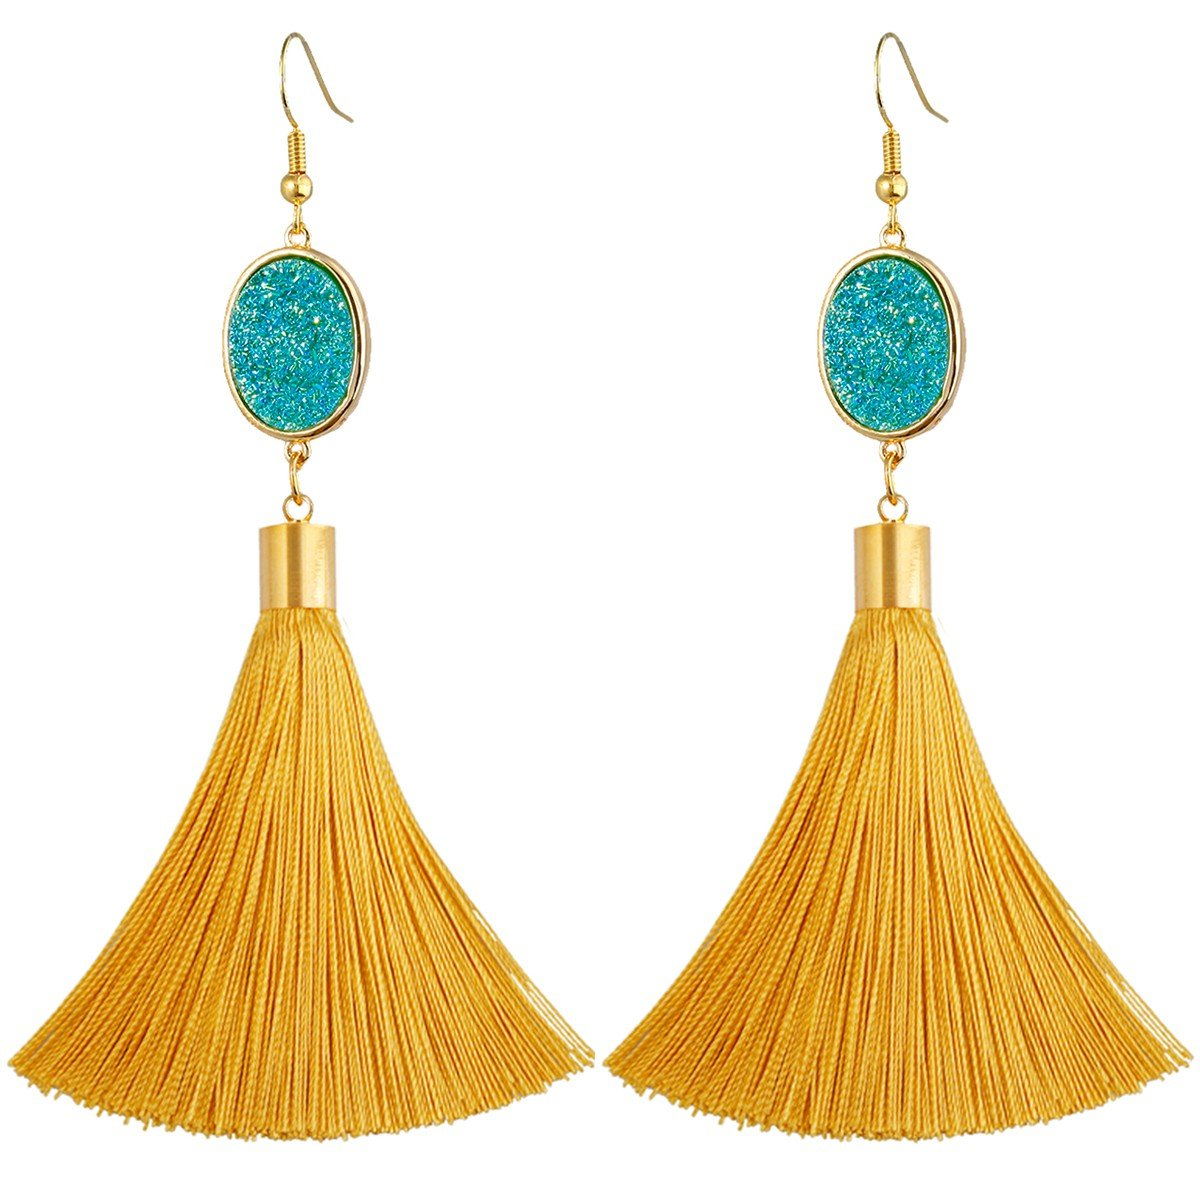 SUNYIK Bohemia Crystal Druzy Dangle Earrings for Women,with Thread Tassel,Oval Teal Blue